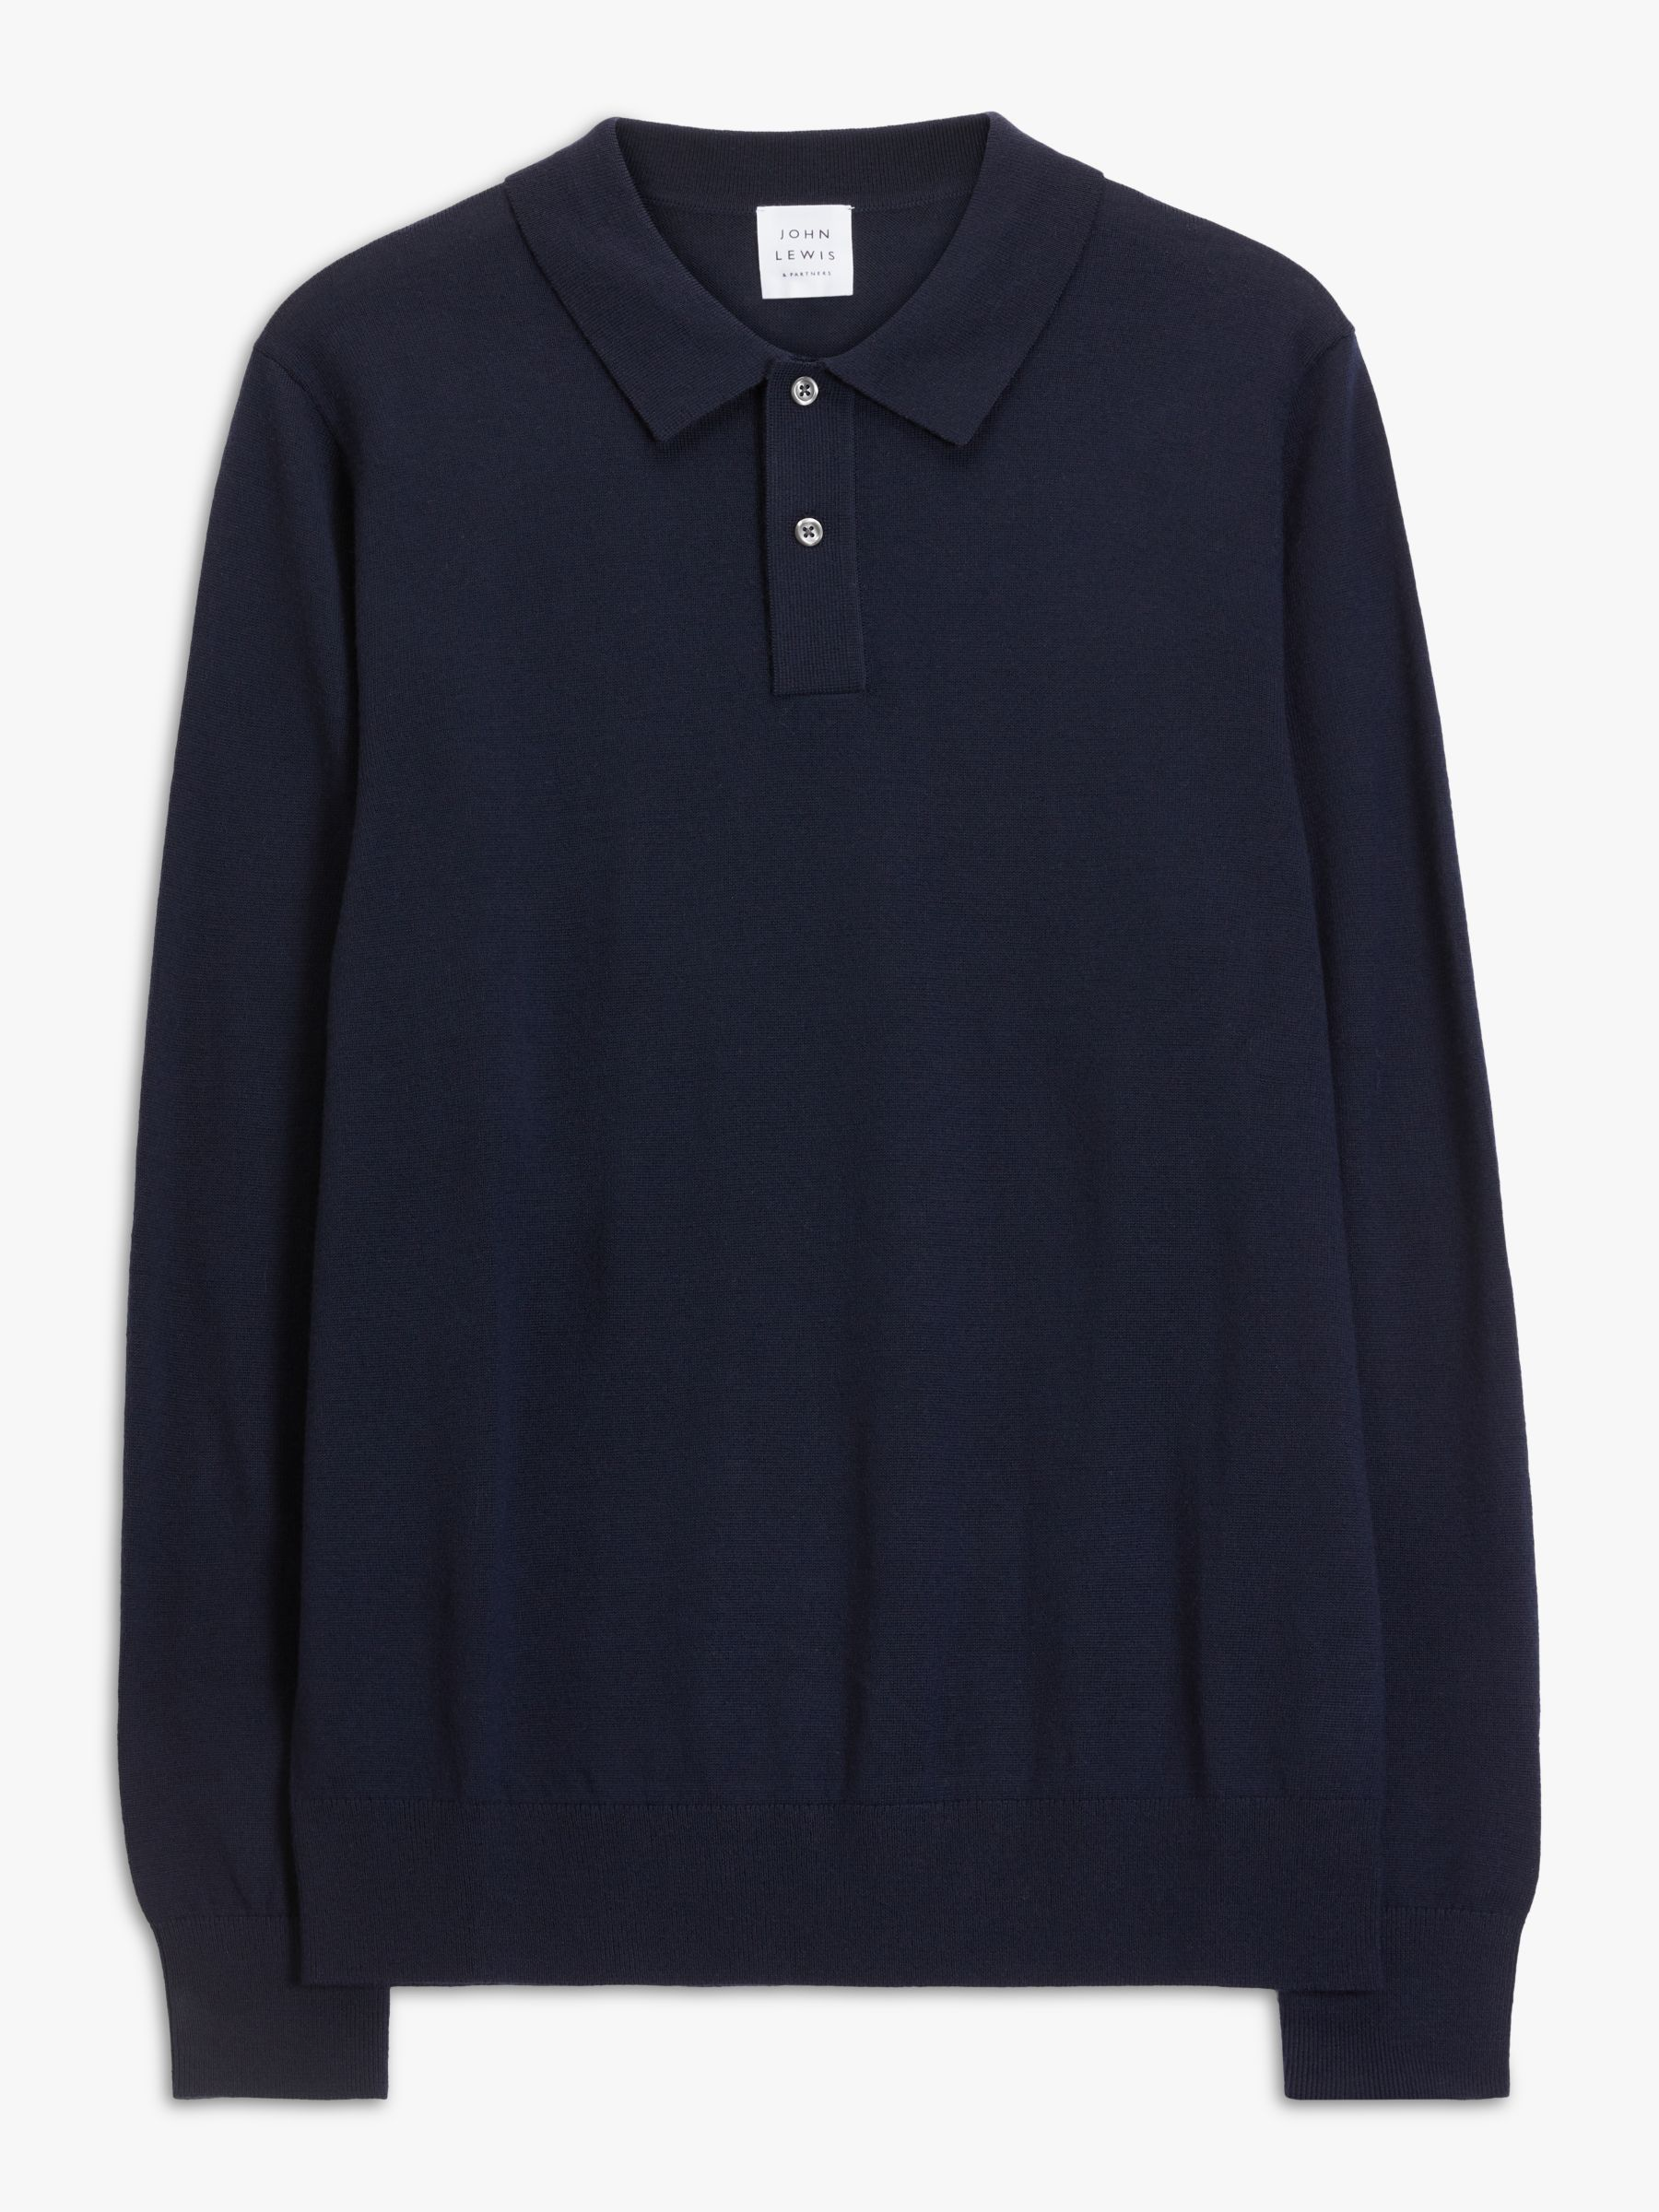 Buy John Lewis & Partners Extra Fine Merino Polo Top, Navy, S Online at johnlewis.com